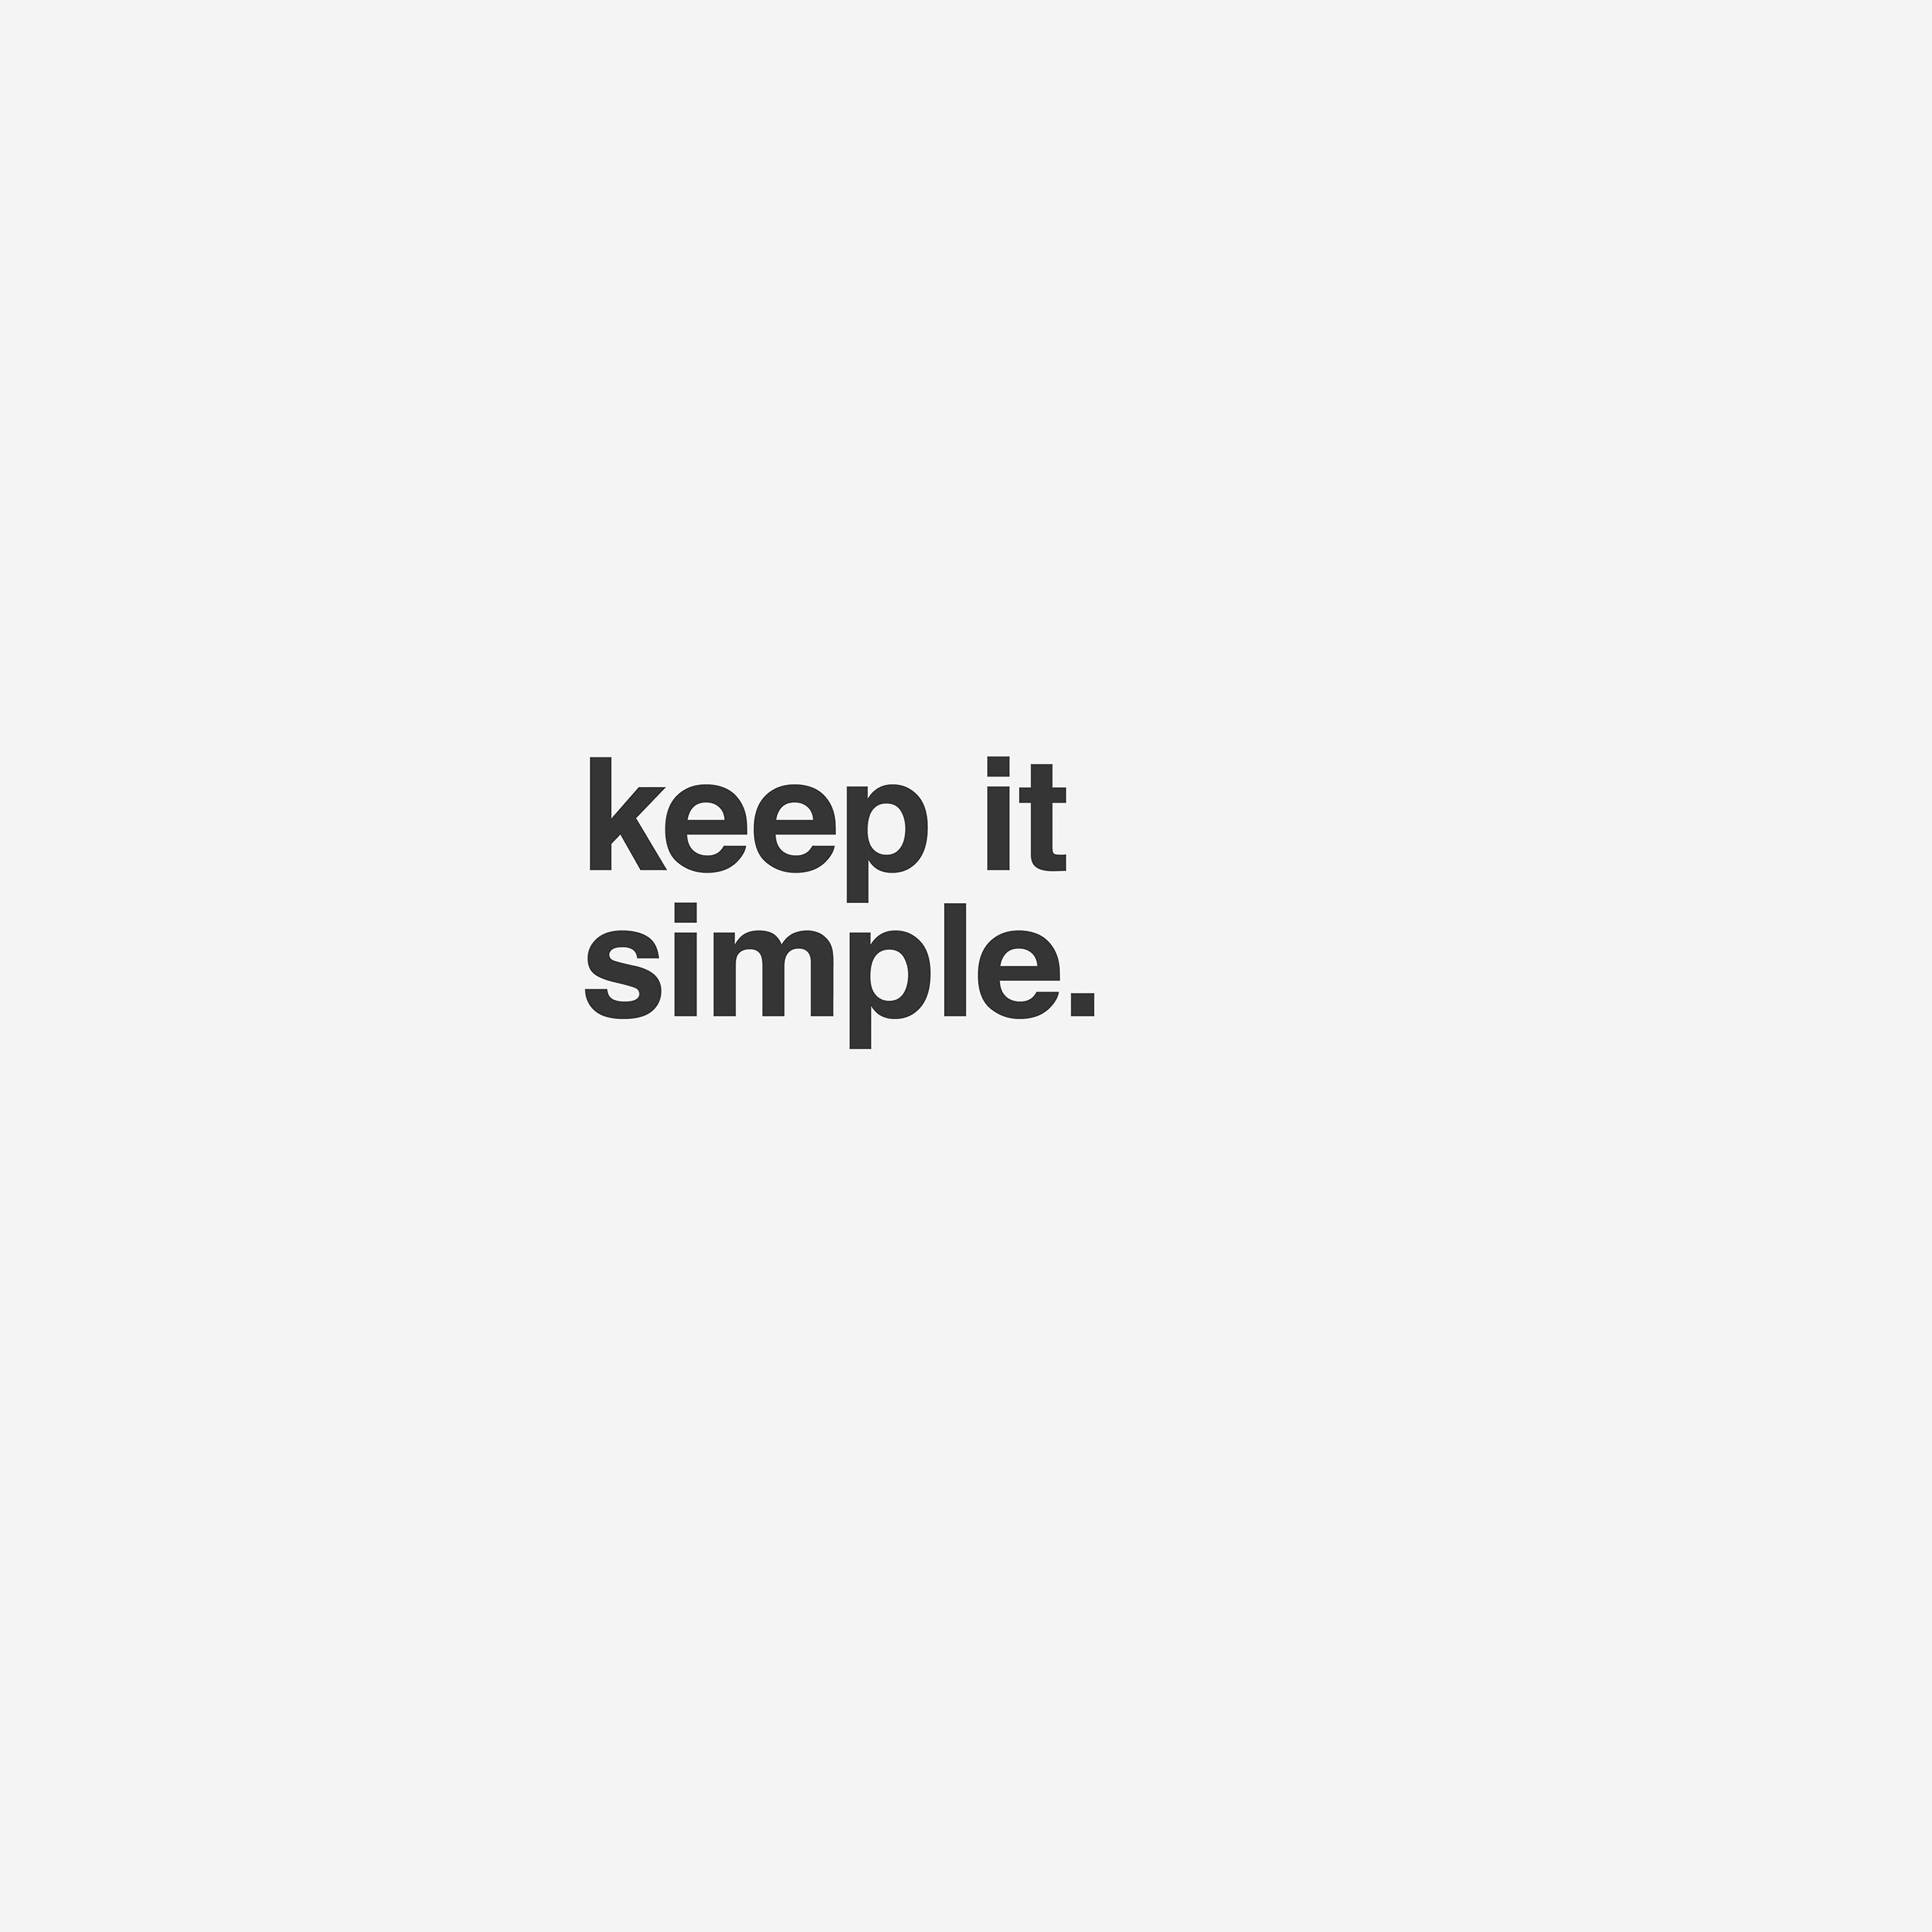 keep it simple essay Teaching children paragraph writing is hard by pattern based writing: let's keep it simple it takes children from simple sentences to complete essays fast and with real understanding.